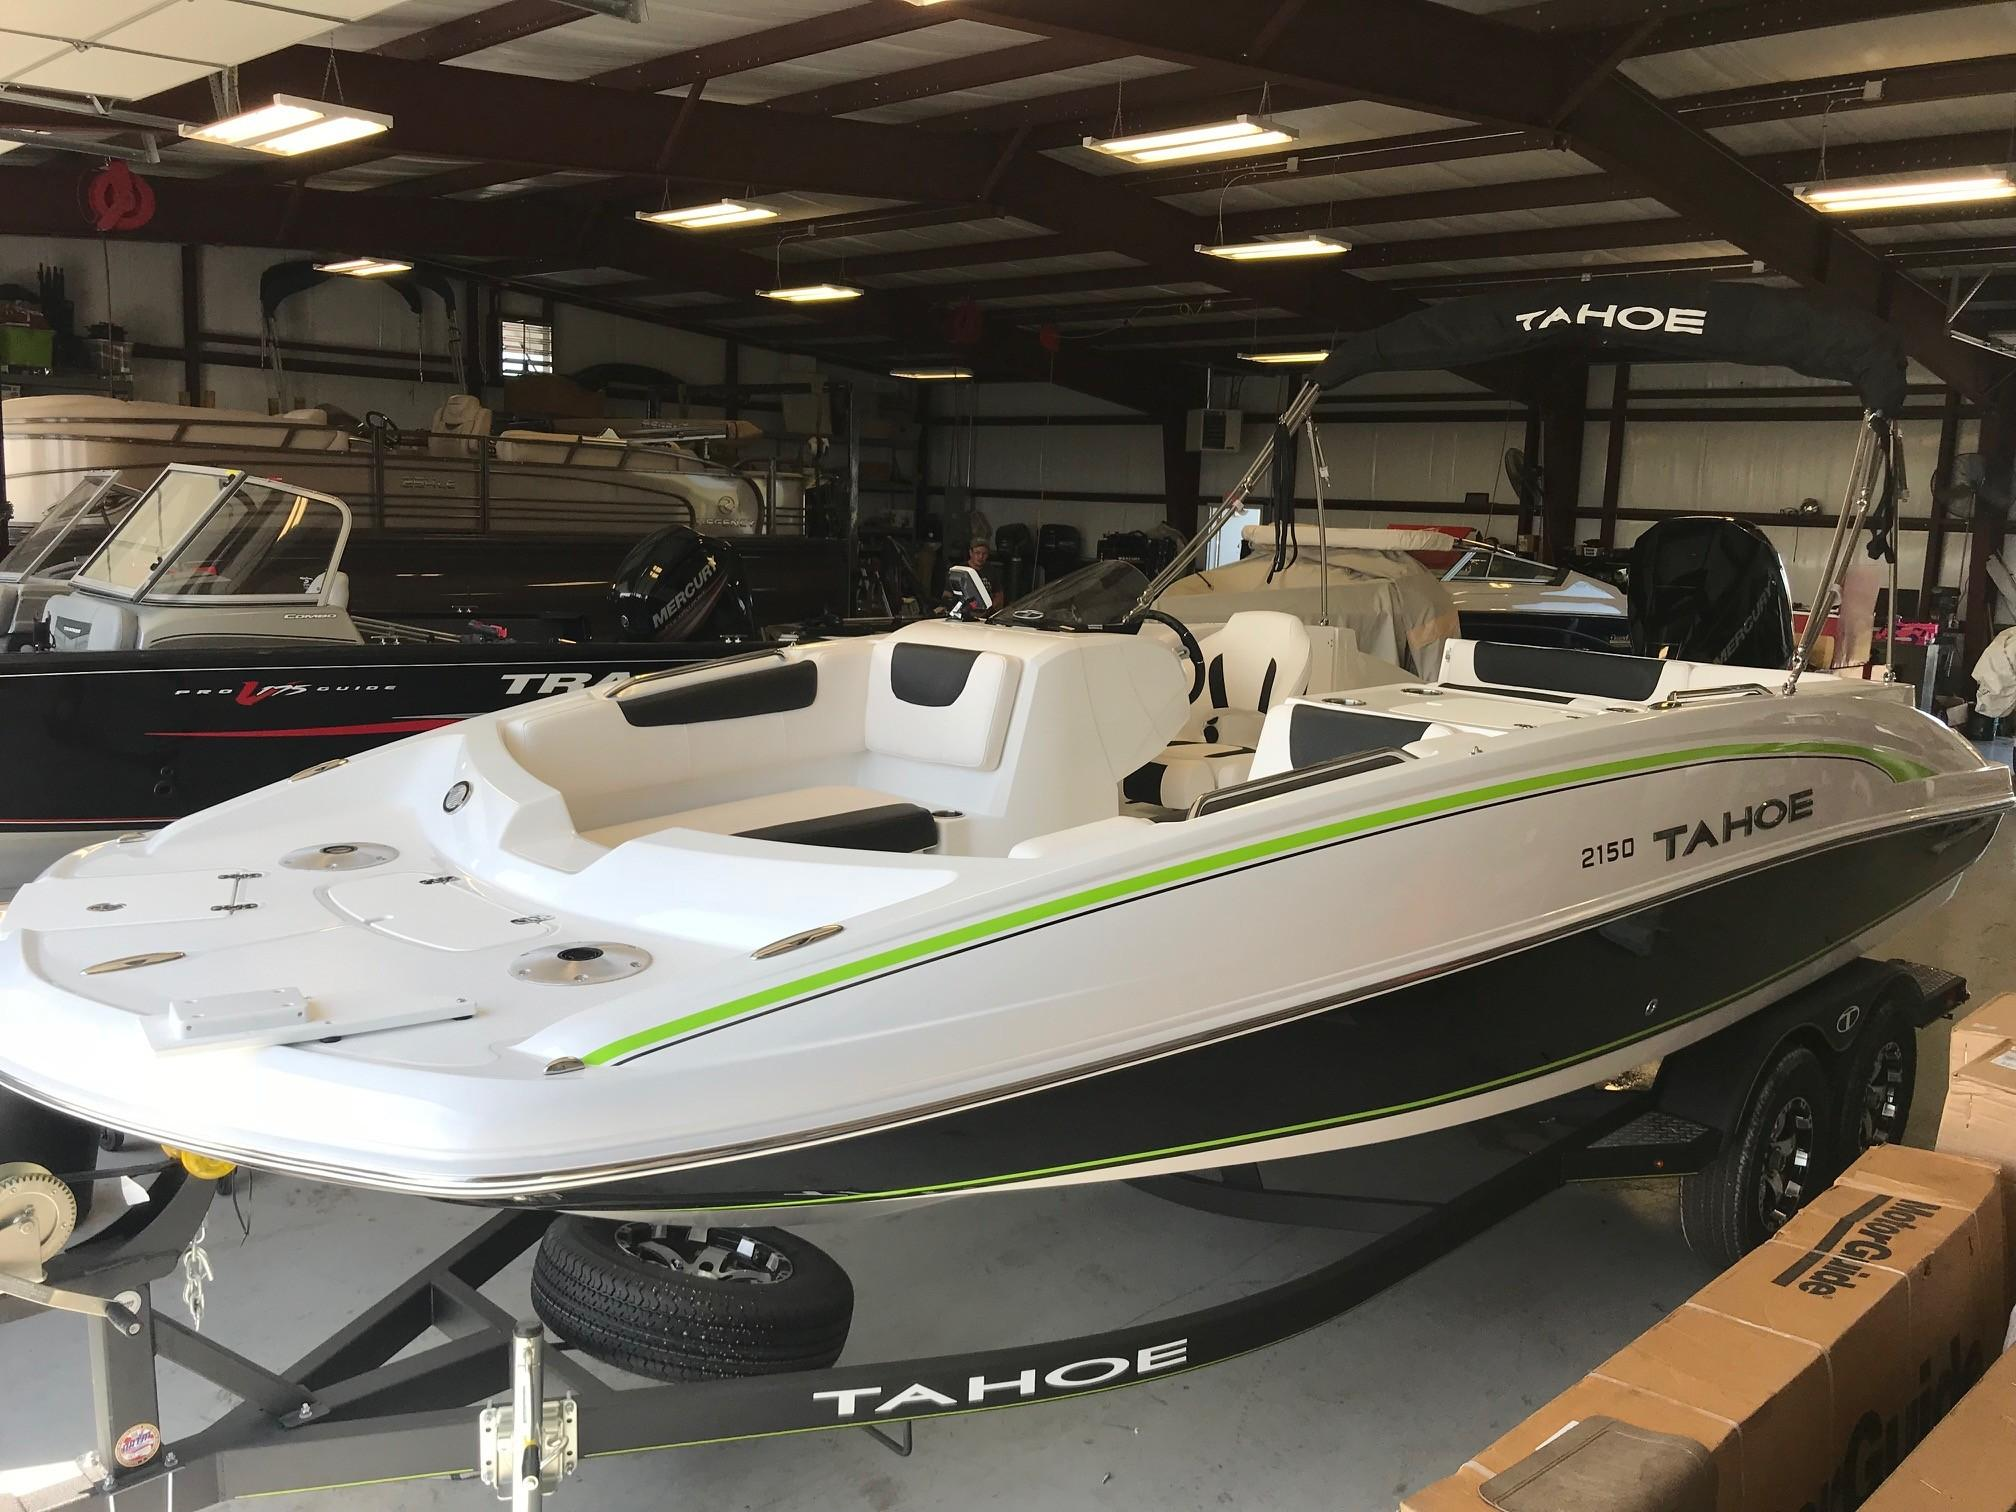 New Boats For Sale - Sundown Marine Inc in United States